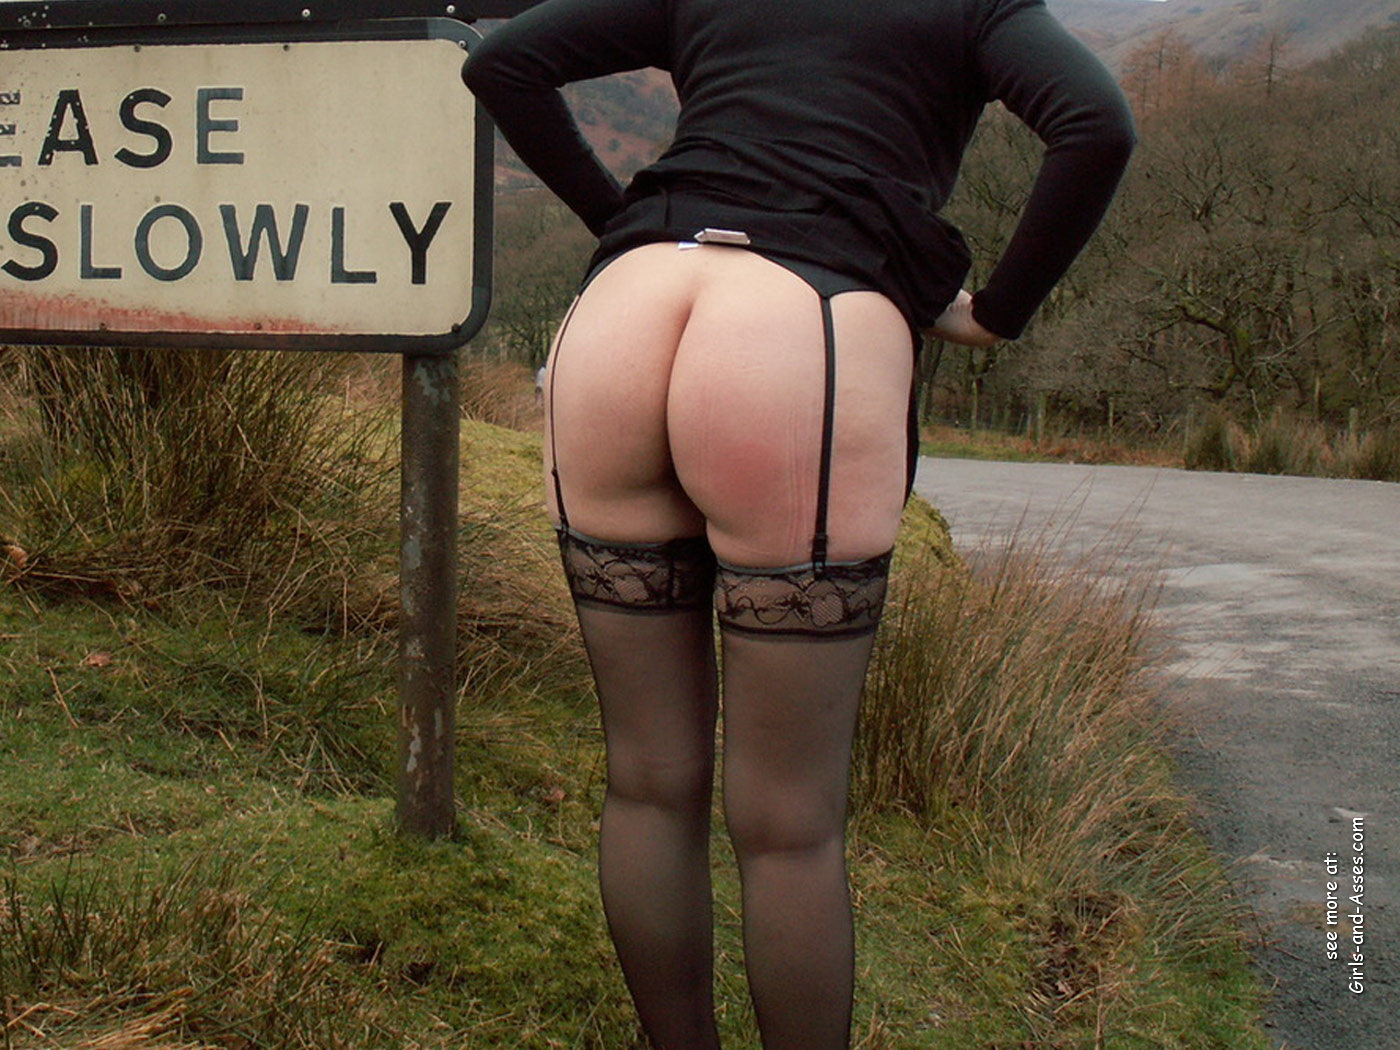 butts in nature naked woman on highway photo 01644